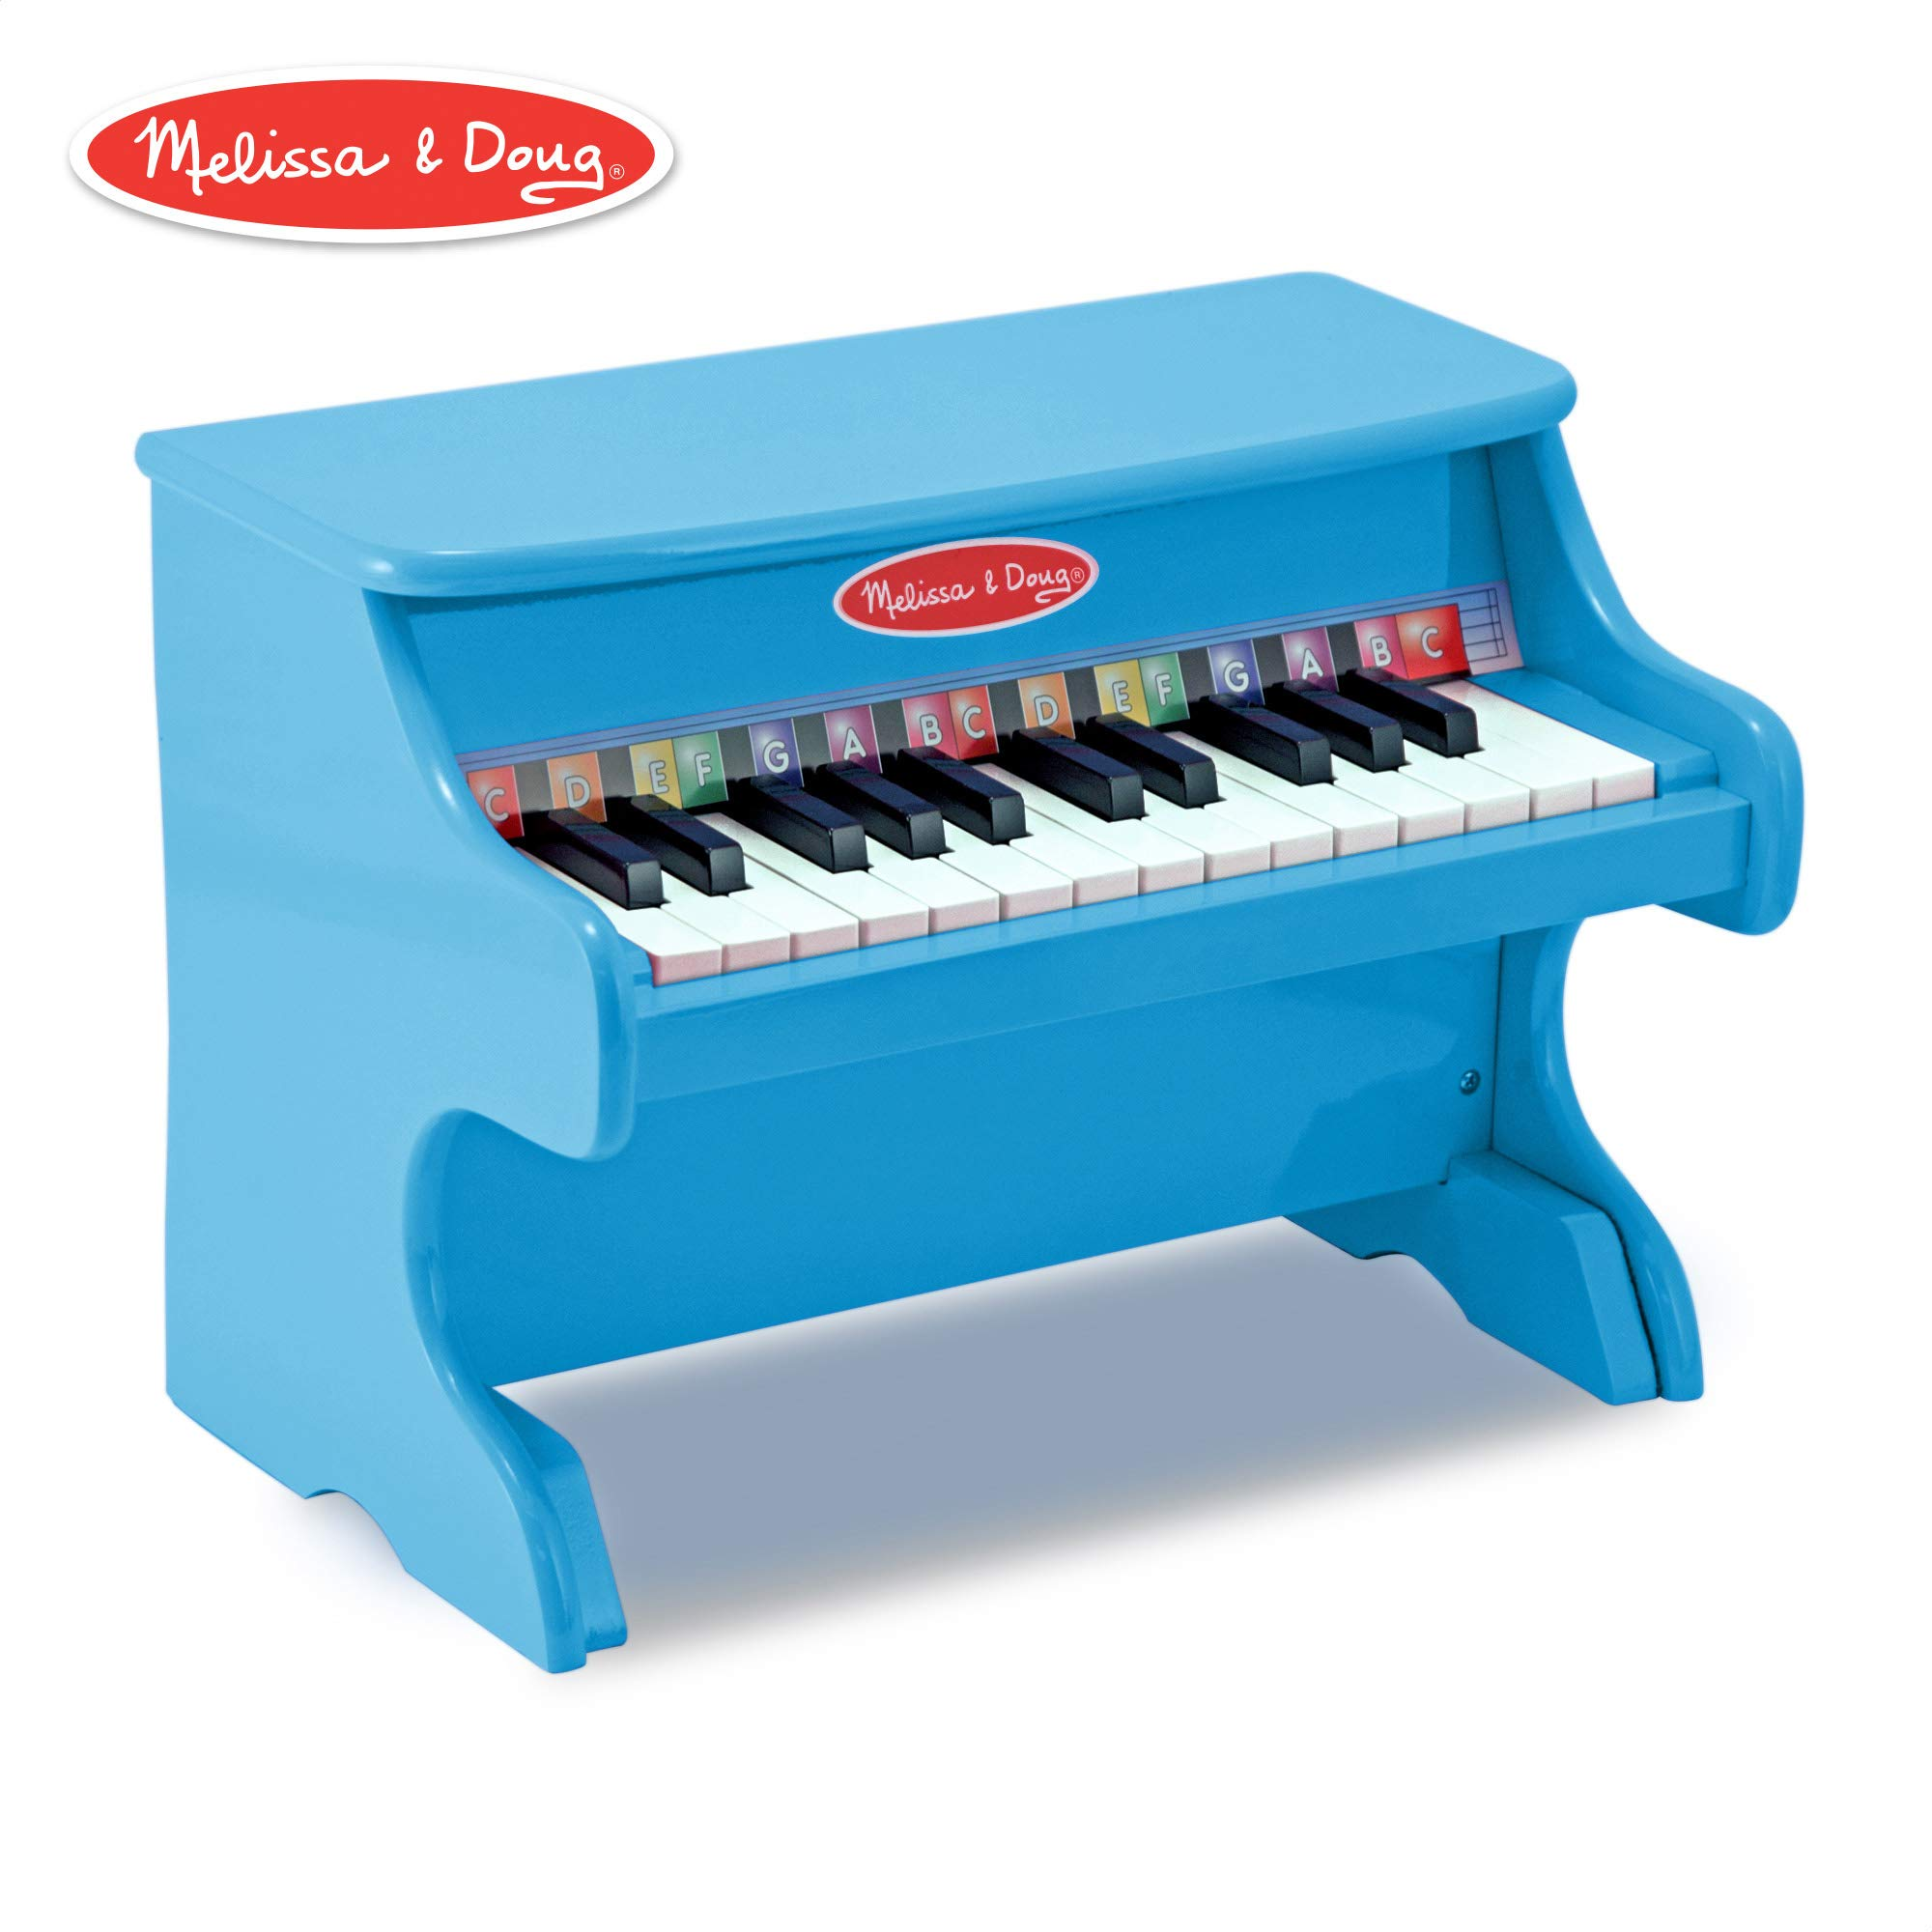 Melissa & Doug Learn-to-Play Piano With 25 Keys and Color-Coded Songbook - Blue by Melissa & Doug